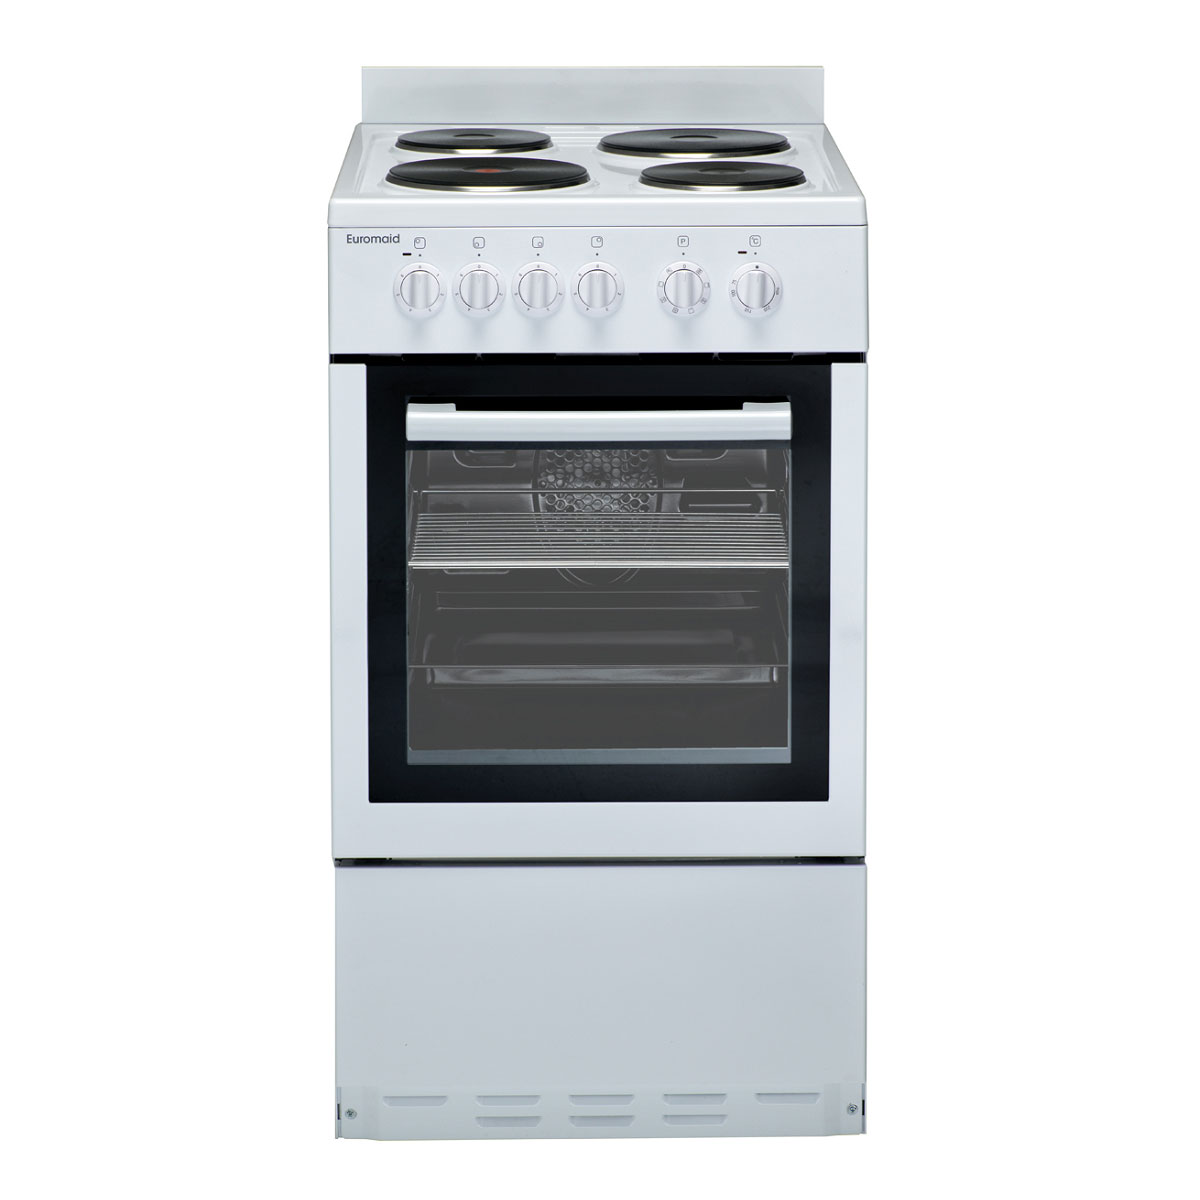 Euromaid EW50 Freestanding Electric Oven/Stove White - Up to 60% Off